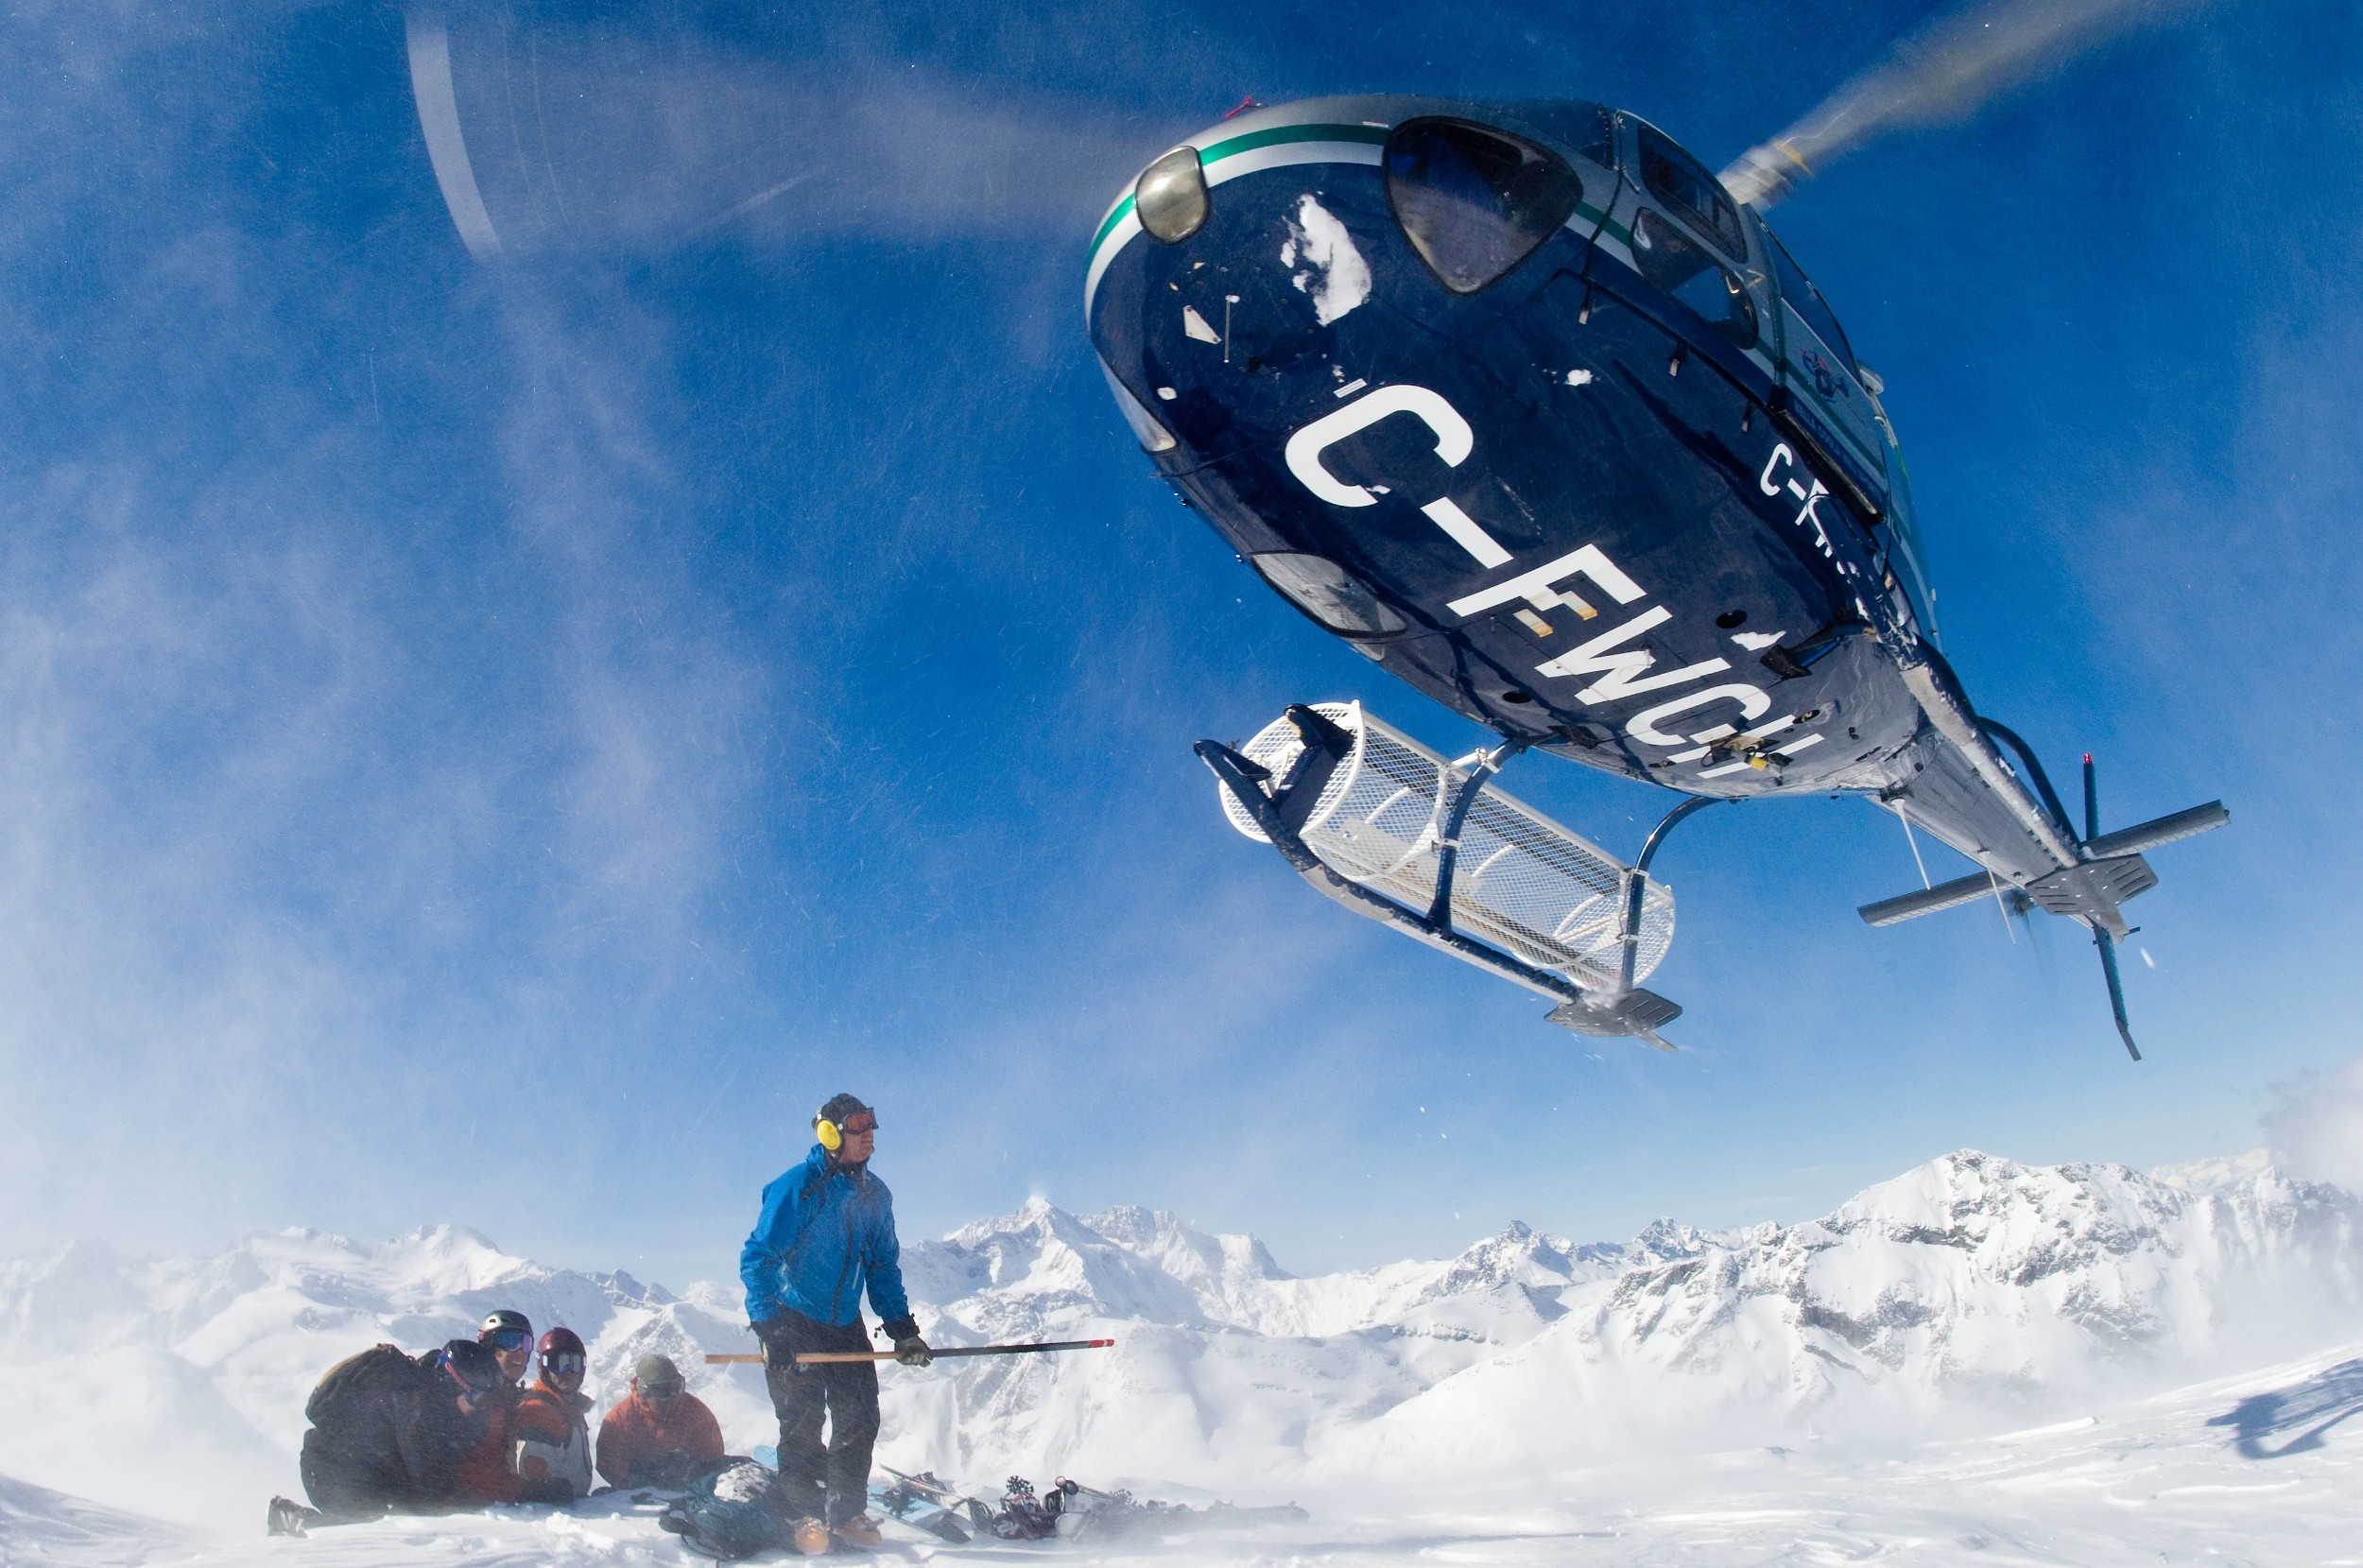 Heli Landing with Group photo Eric Berger and Bella Coola Heli Sports.jpg